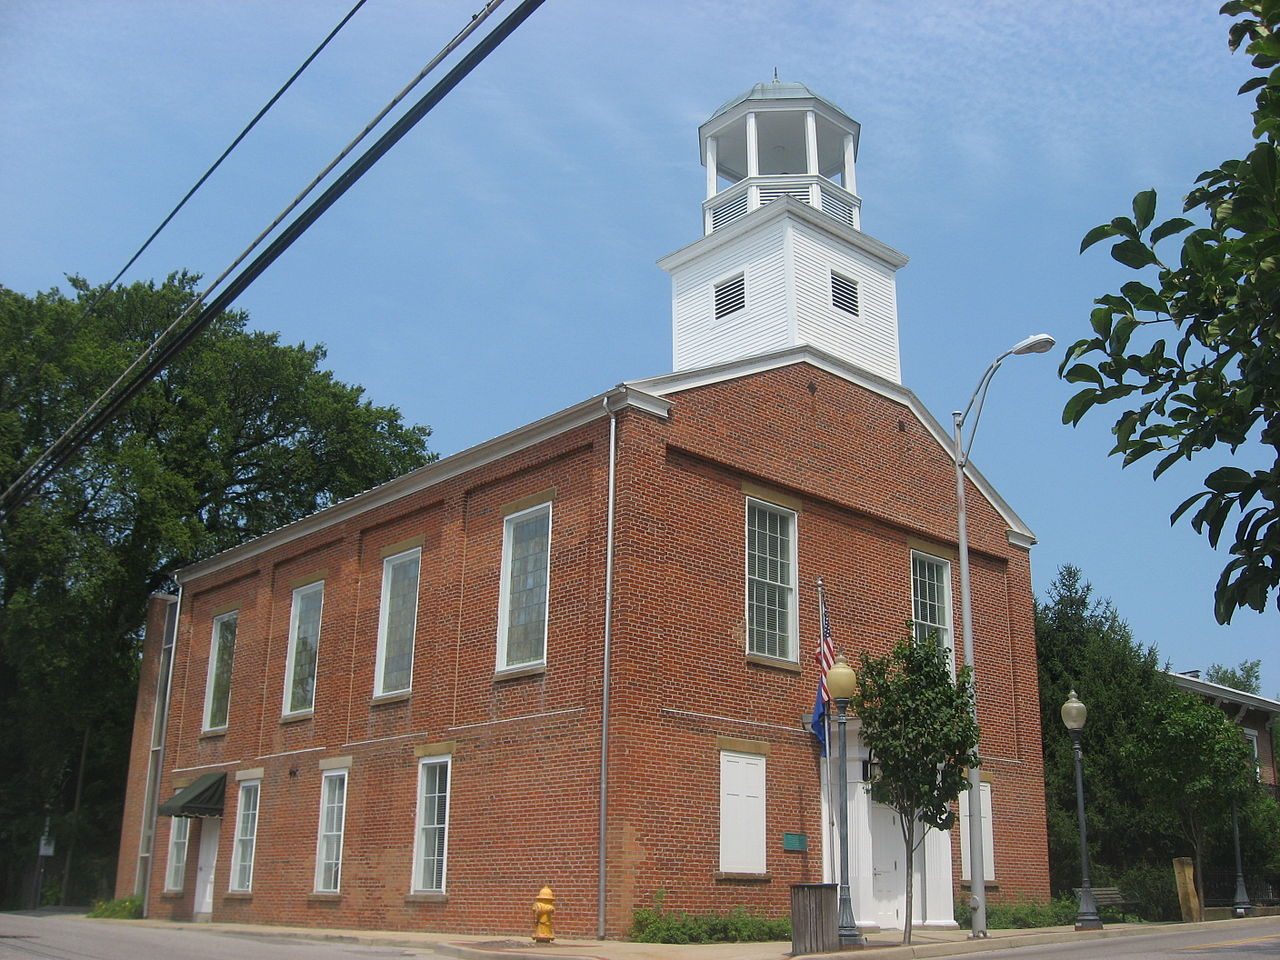 Newburgh Museum opened in 2012 and is located in the historic  Old Newburgh Presbyterian Church, which was built in 1853.